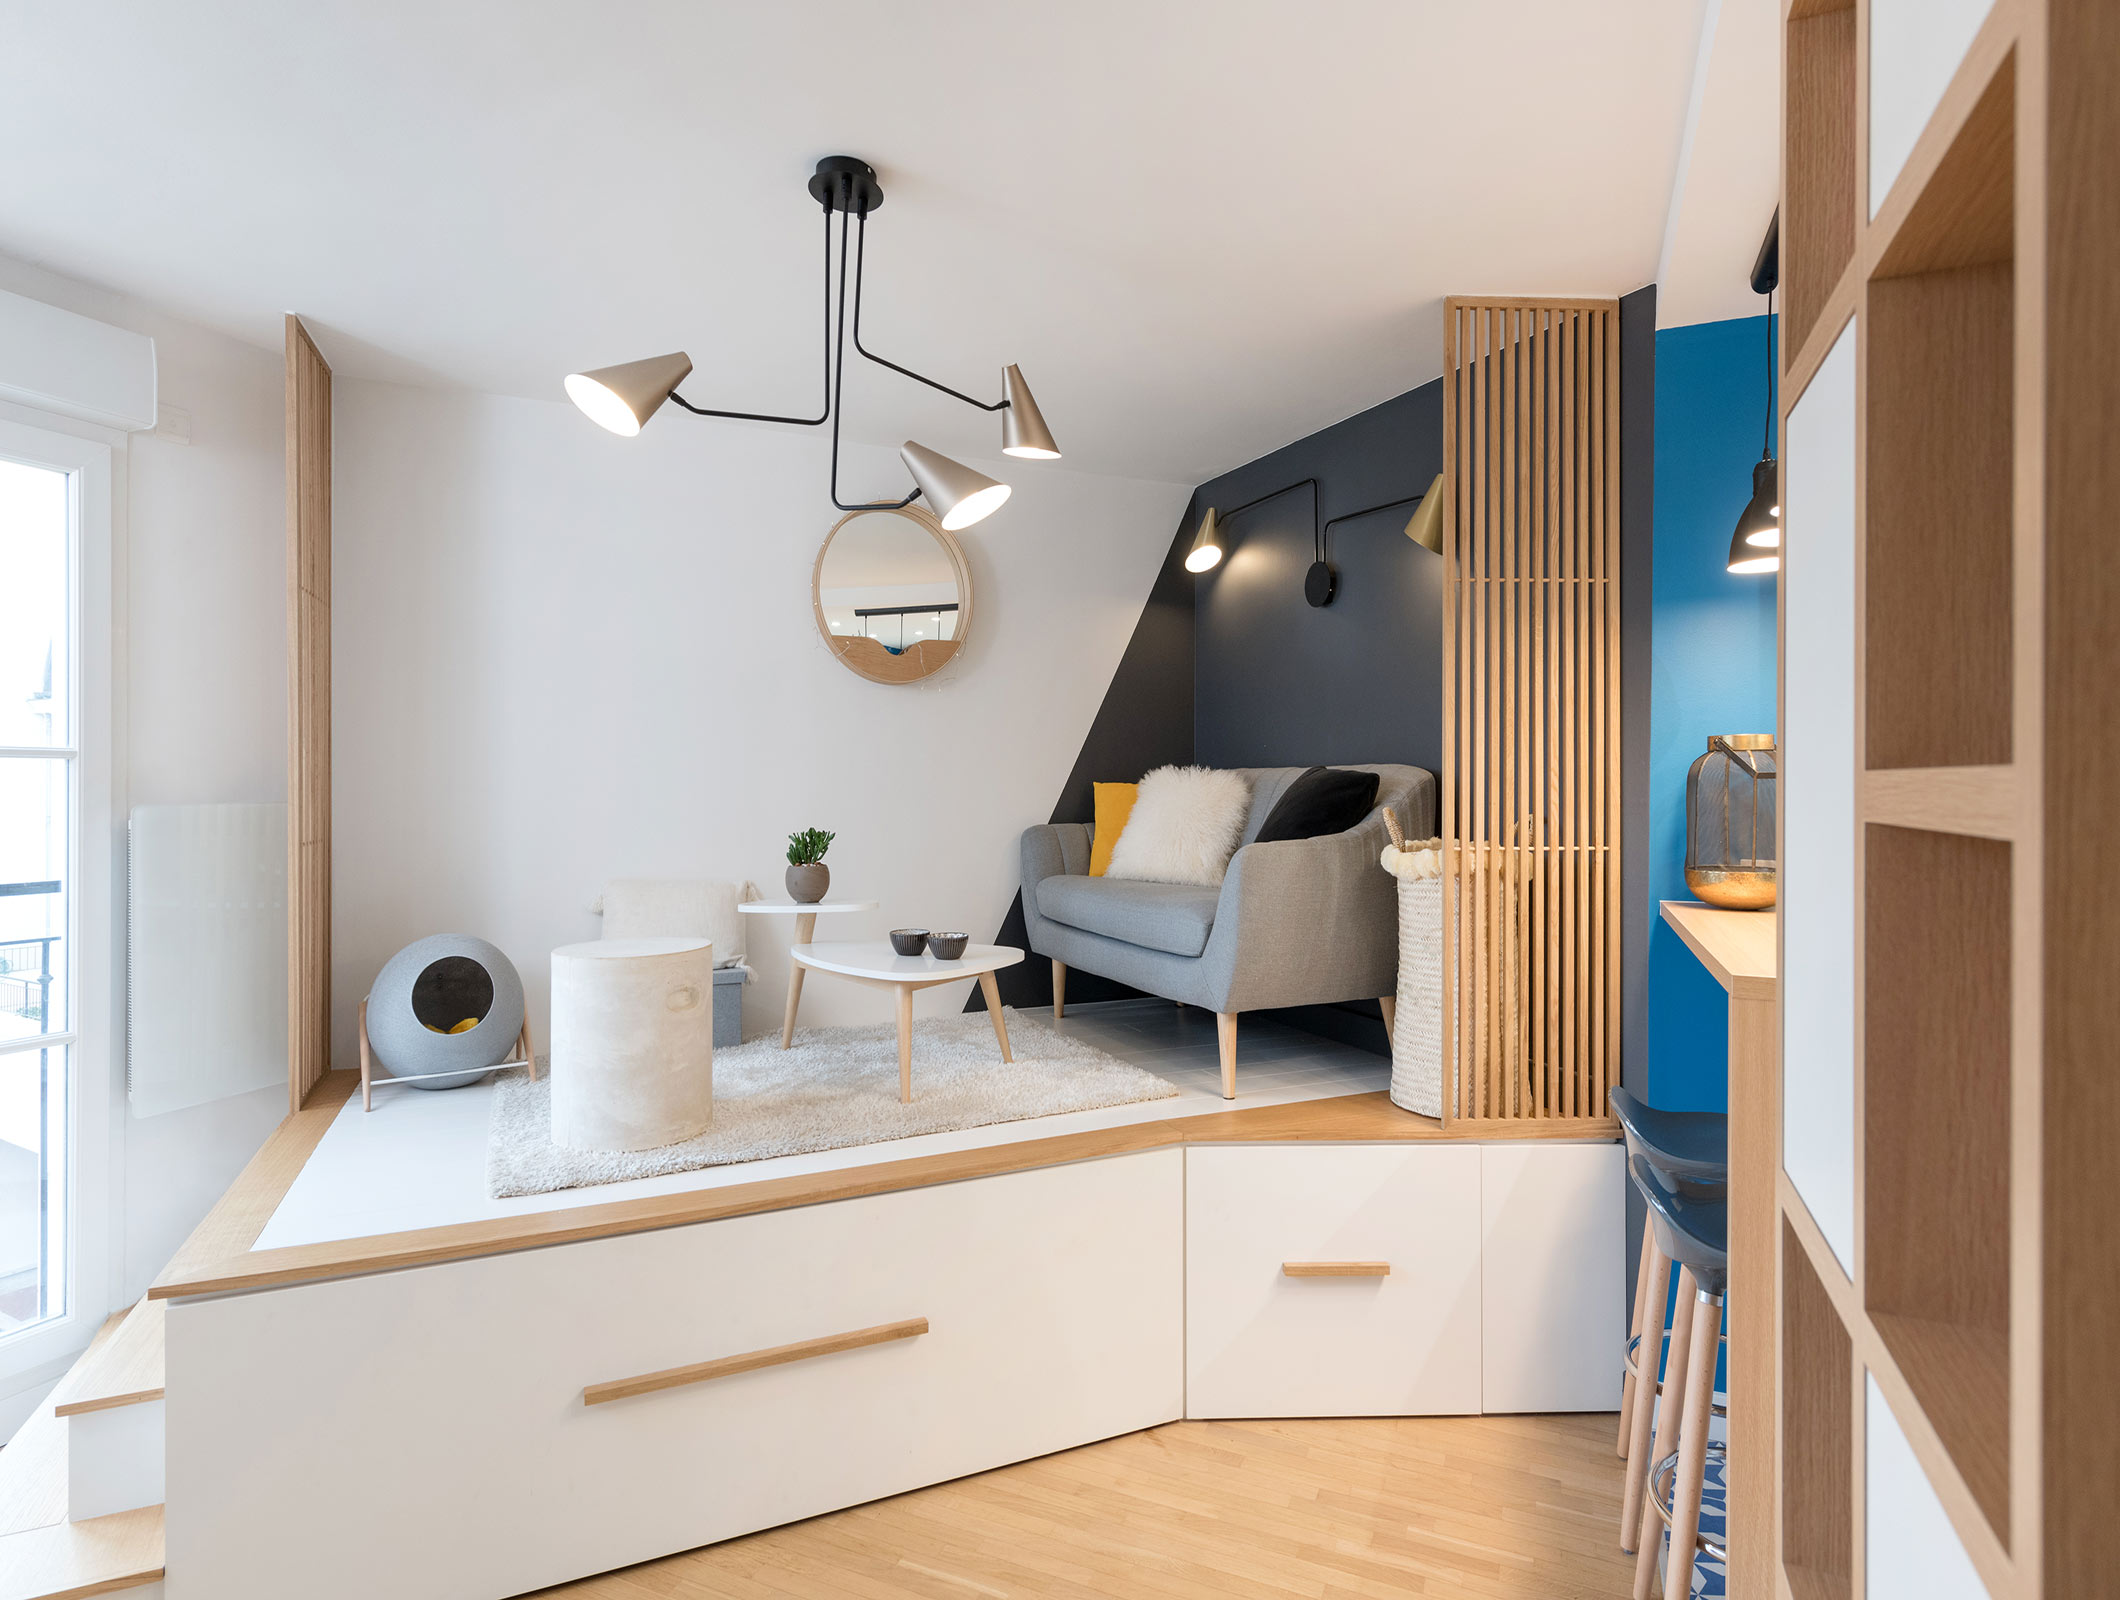 renovation-studio-architecture-decoration-interieur-oise-sur-mesure-interior-design-agence-atmospheres-design-patricia-coignard-mobilier-sur-mesure-bois-idee-deco-amenagement-sur-mesure-petite-surface-home-decor